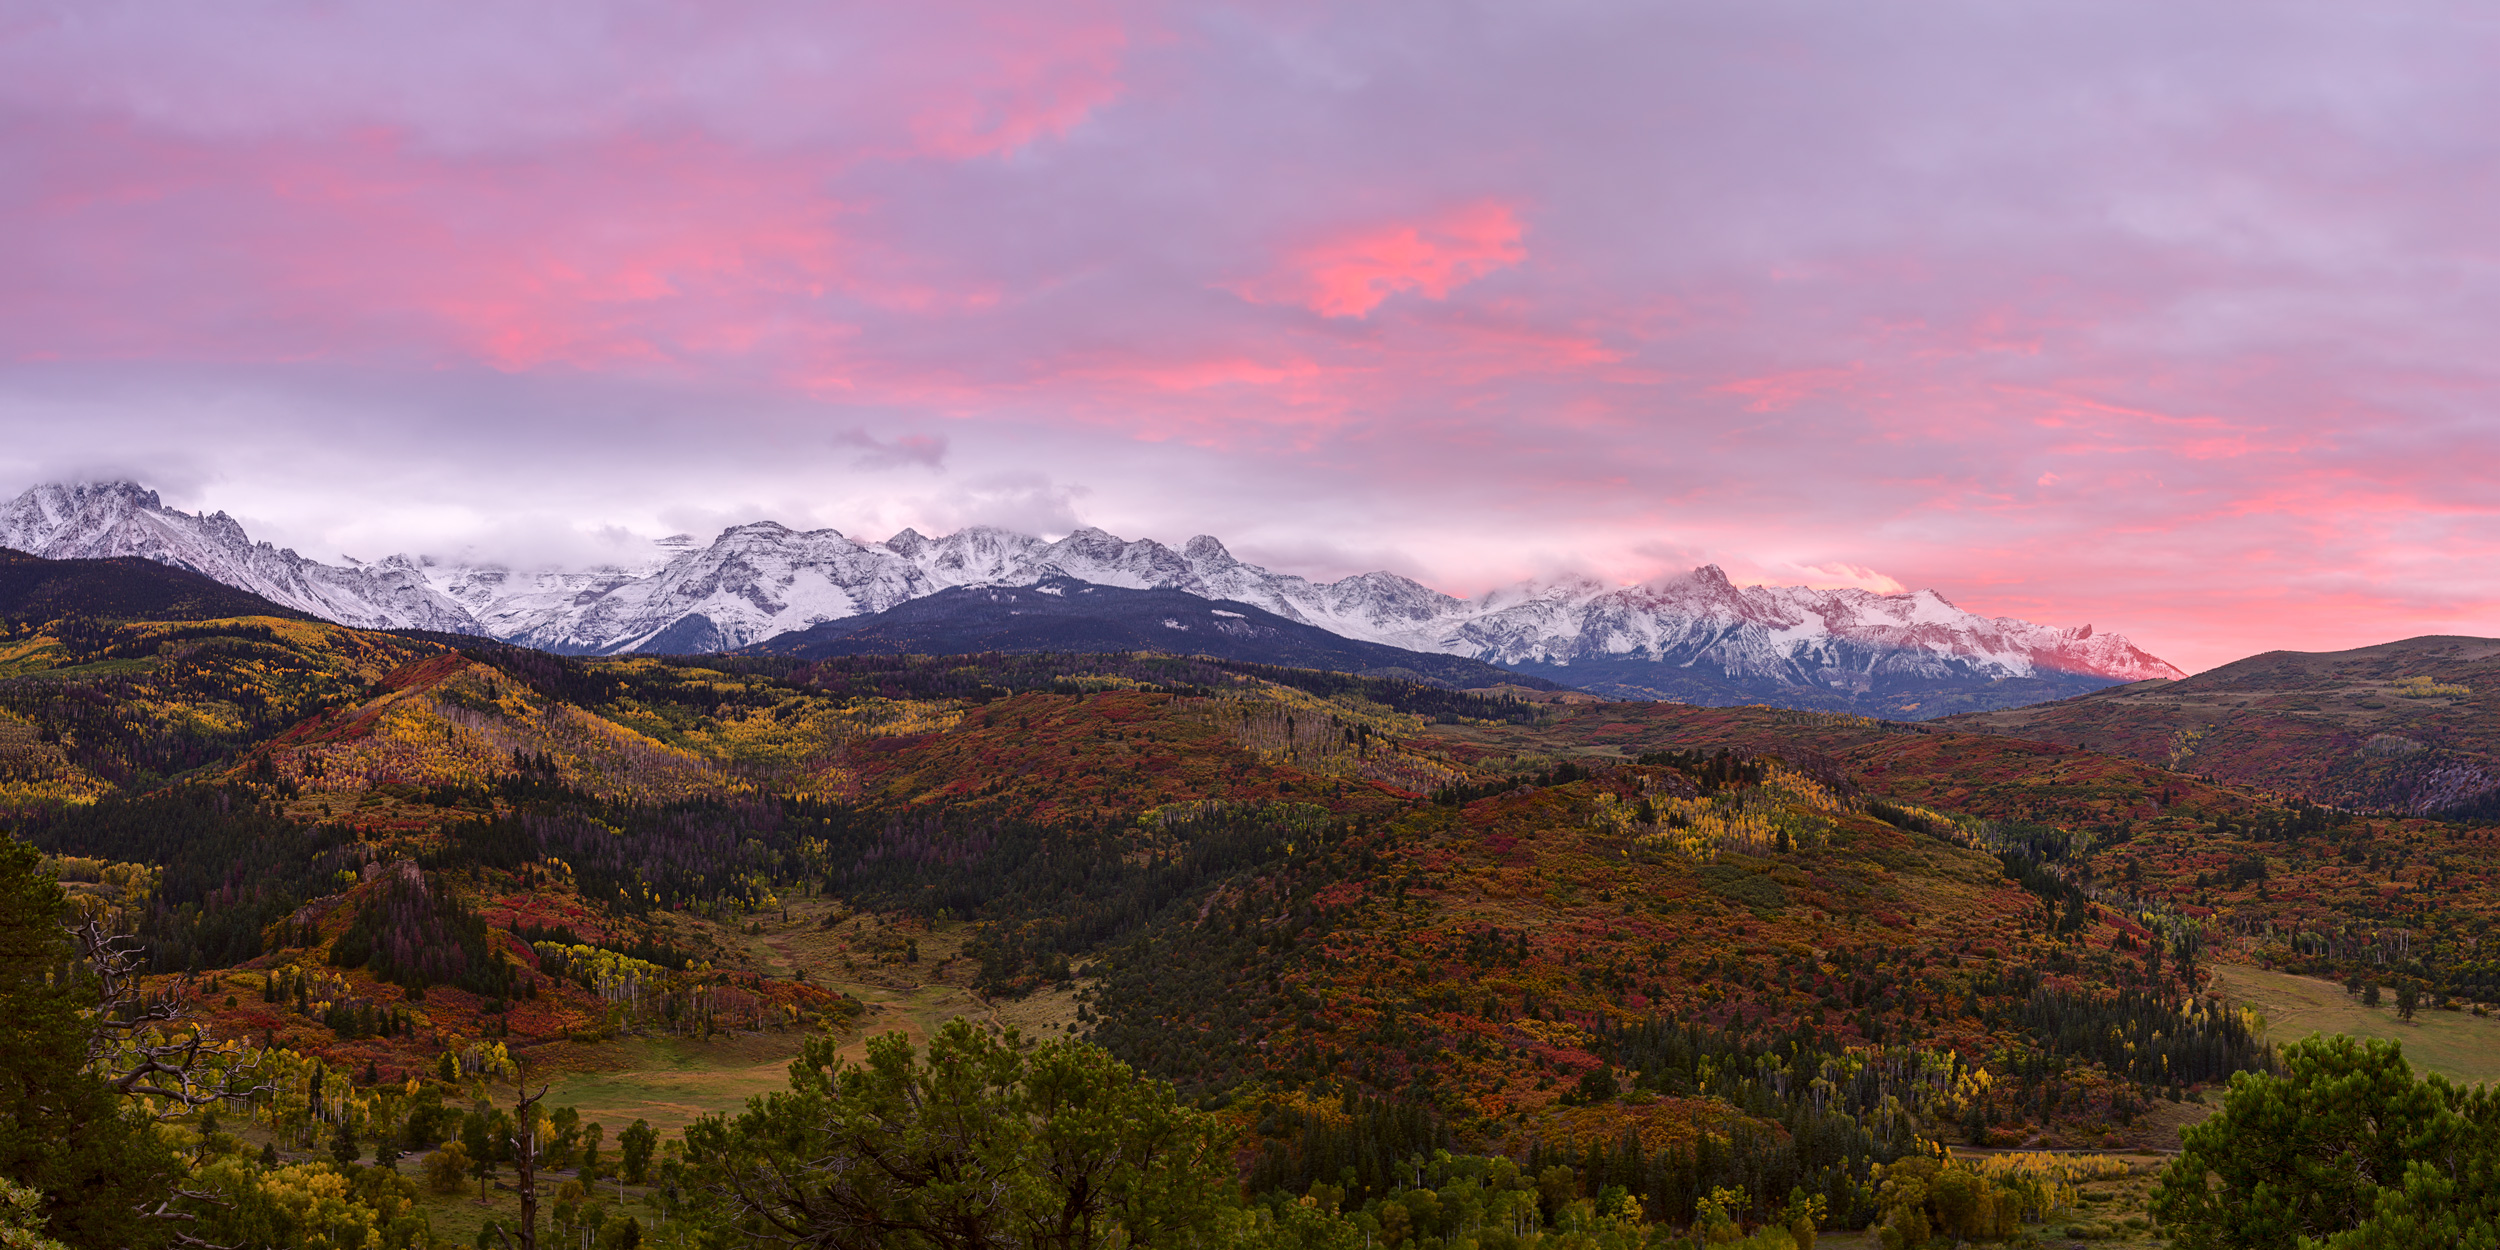 Sunset over the Dallas Divide